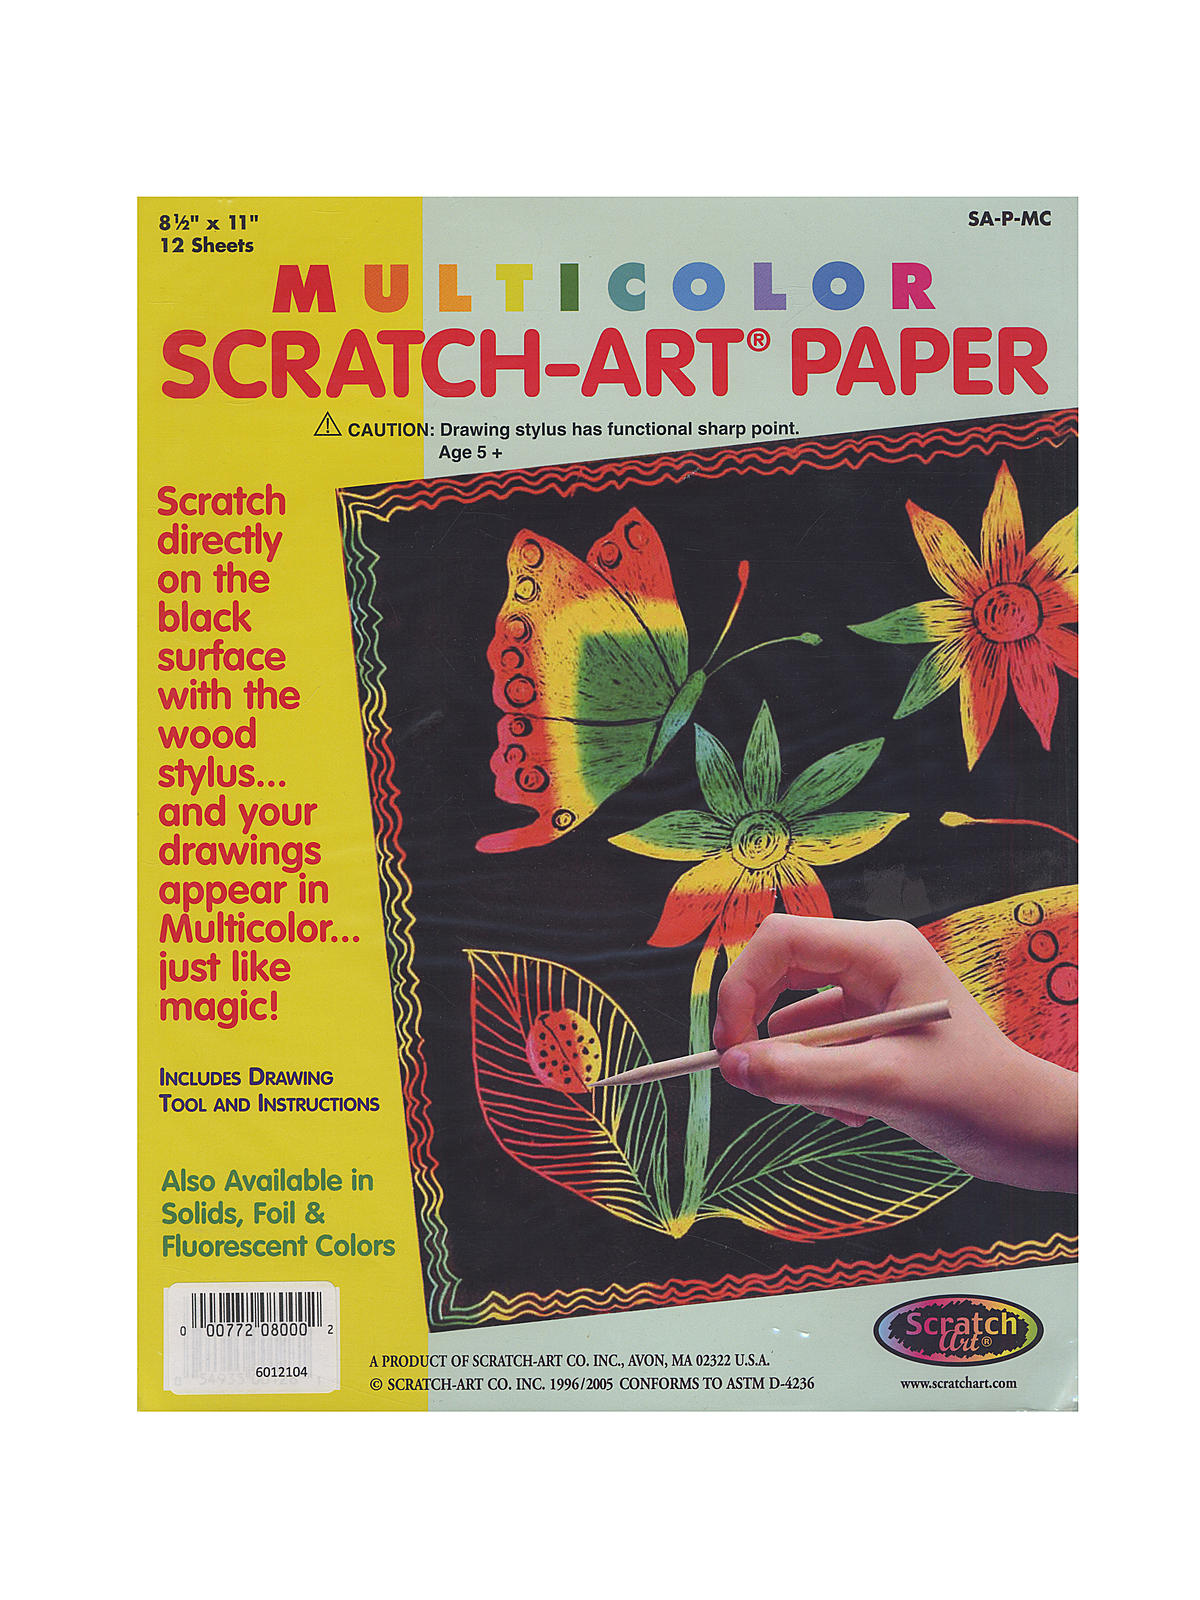 Multicolor Scratch-Art Paper